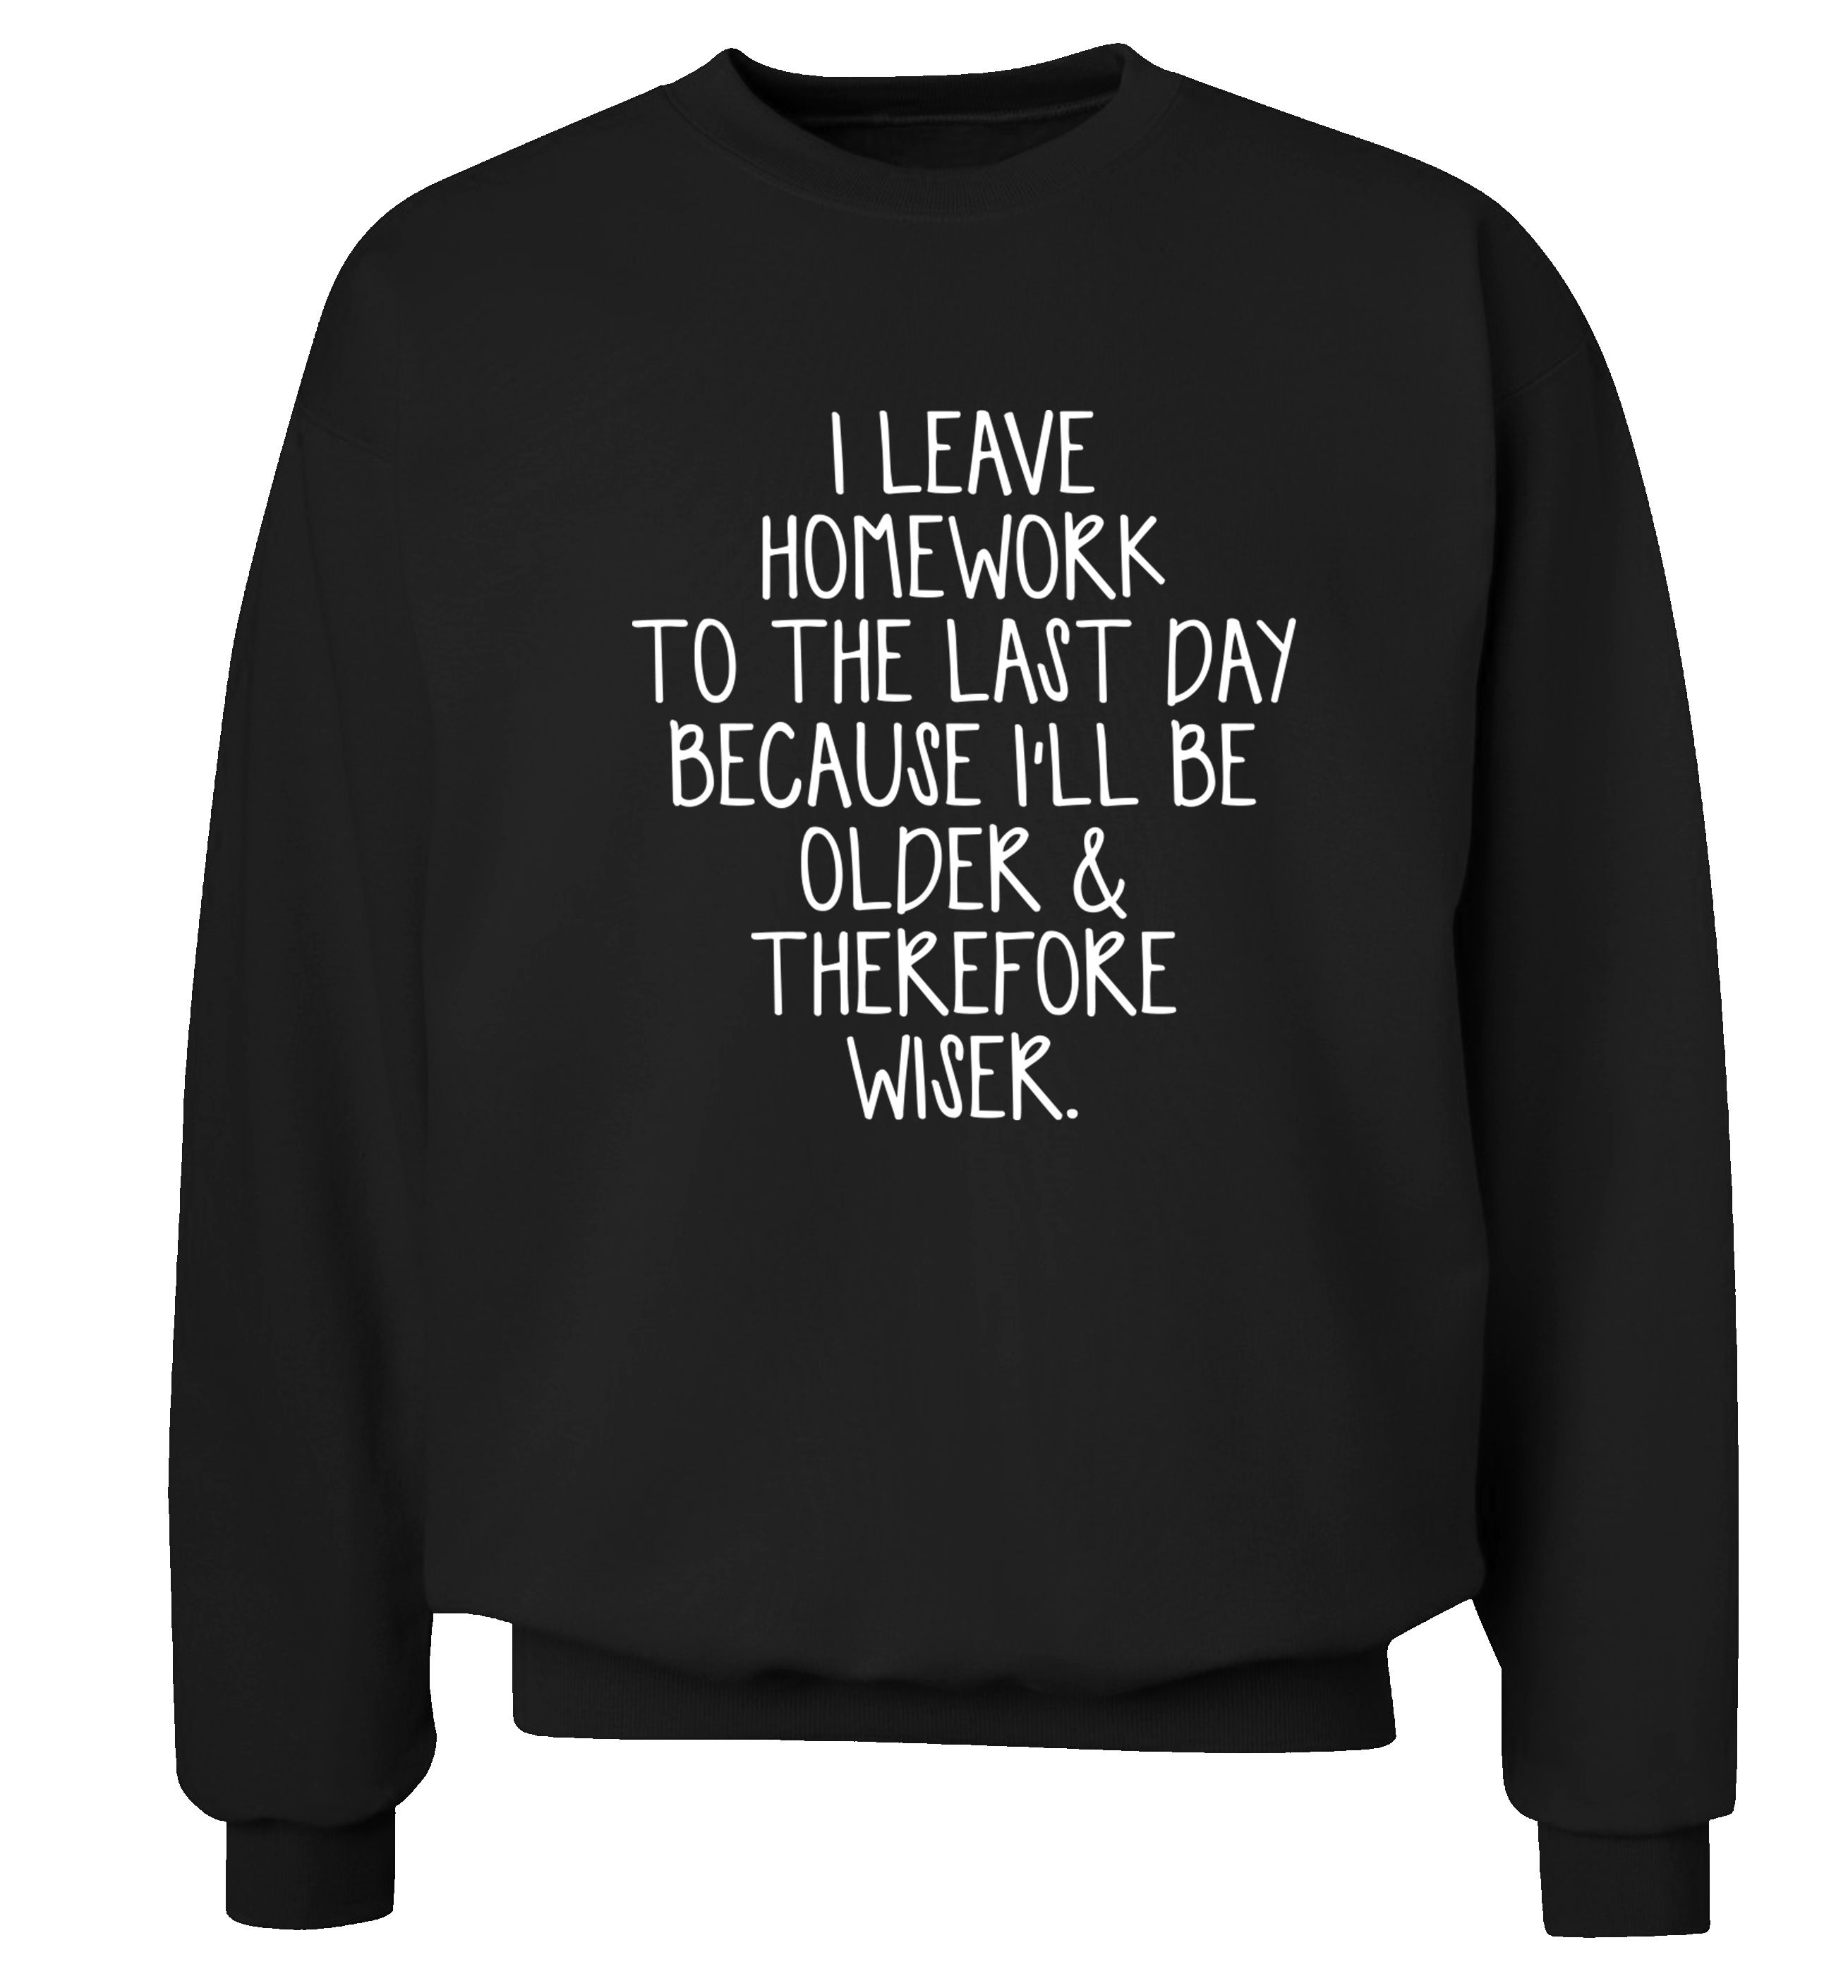 I leave homework to the last day because I'll be older and therefore wiser sweatshirt joke funny tumblr instagram hipster gift quote slogan jumper 220